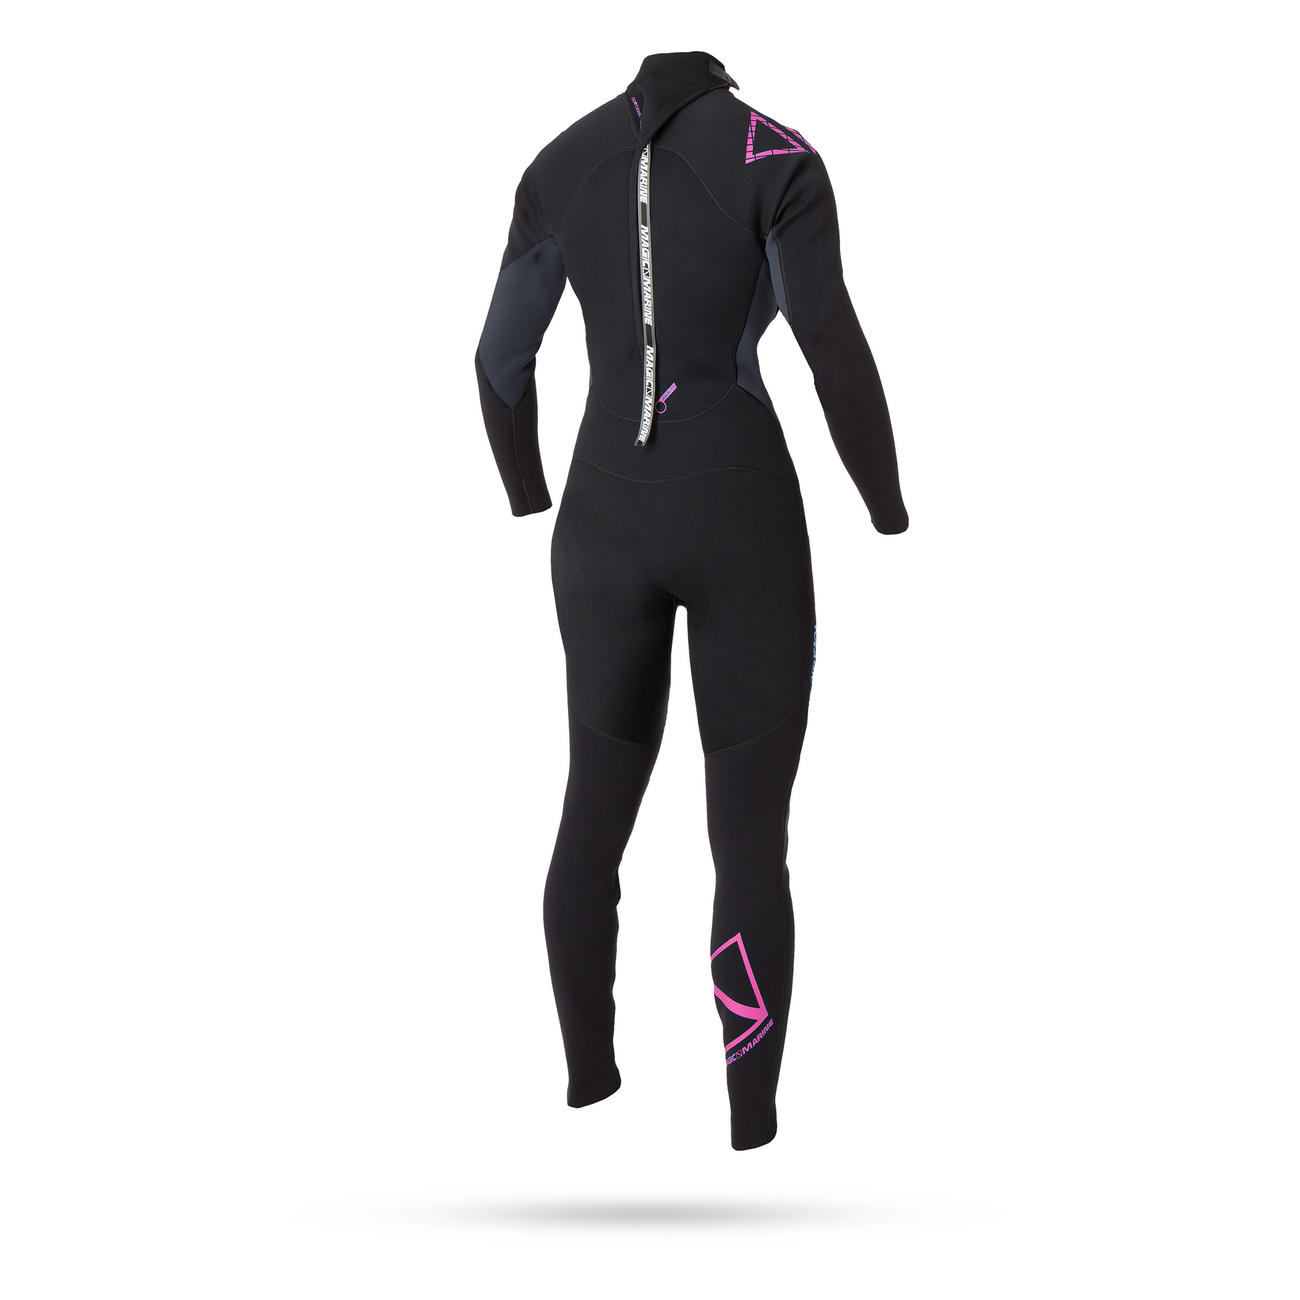 BRAND FULLSUIT 5/4 back-zip | women